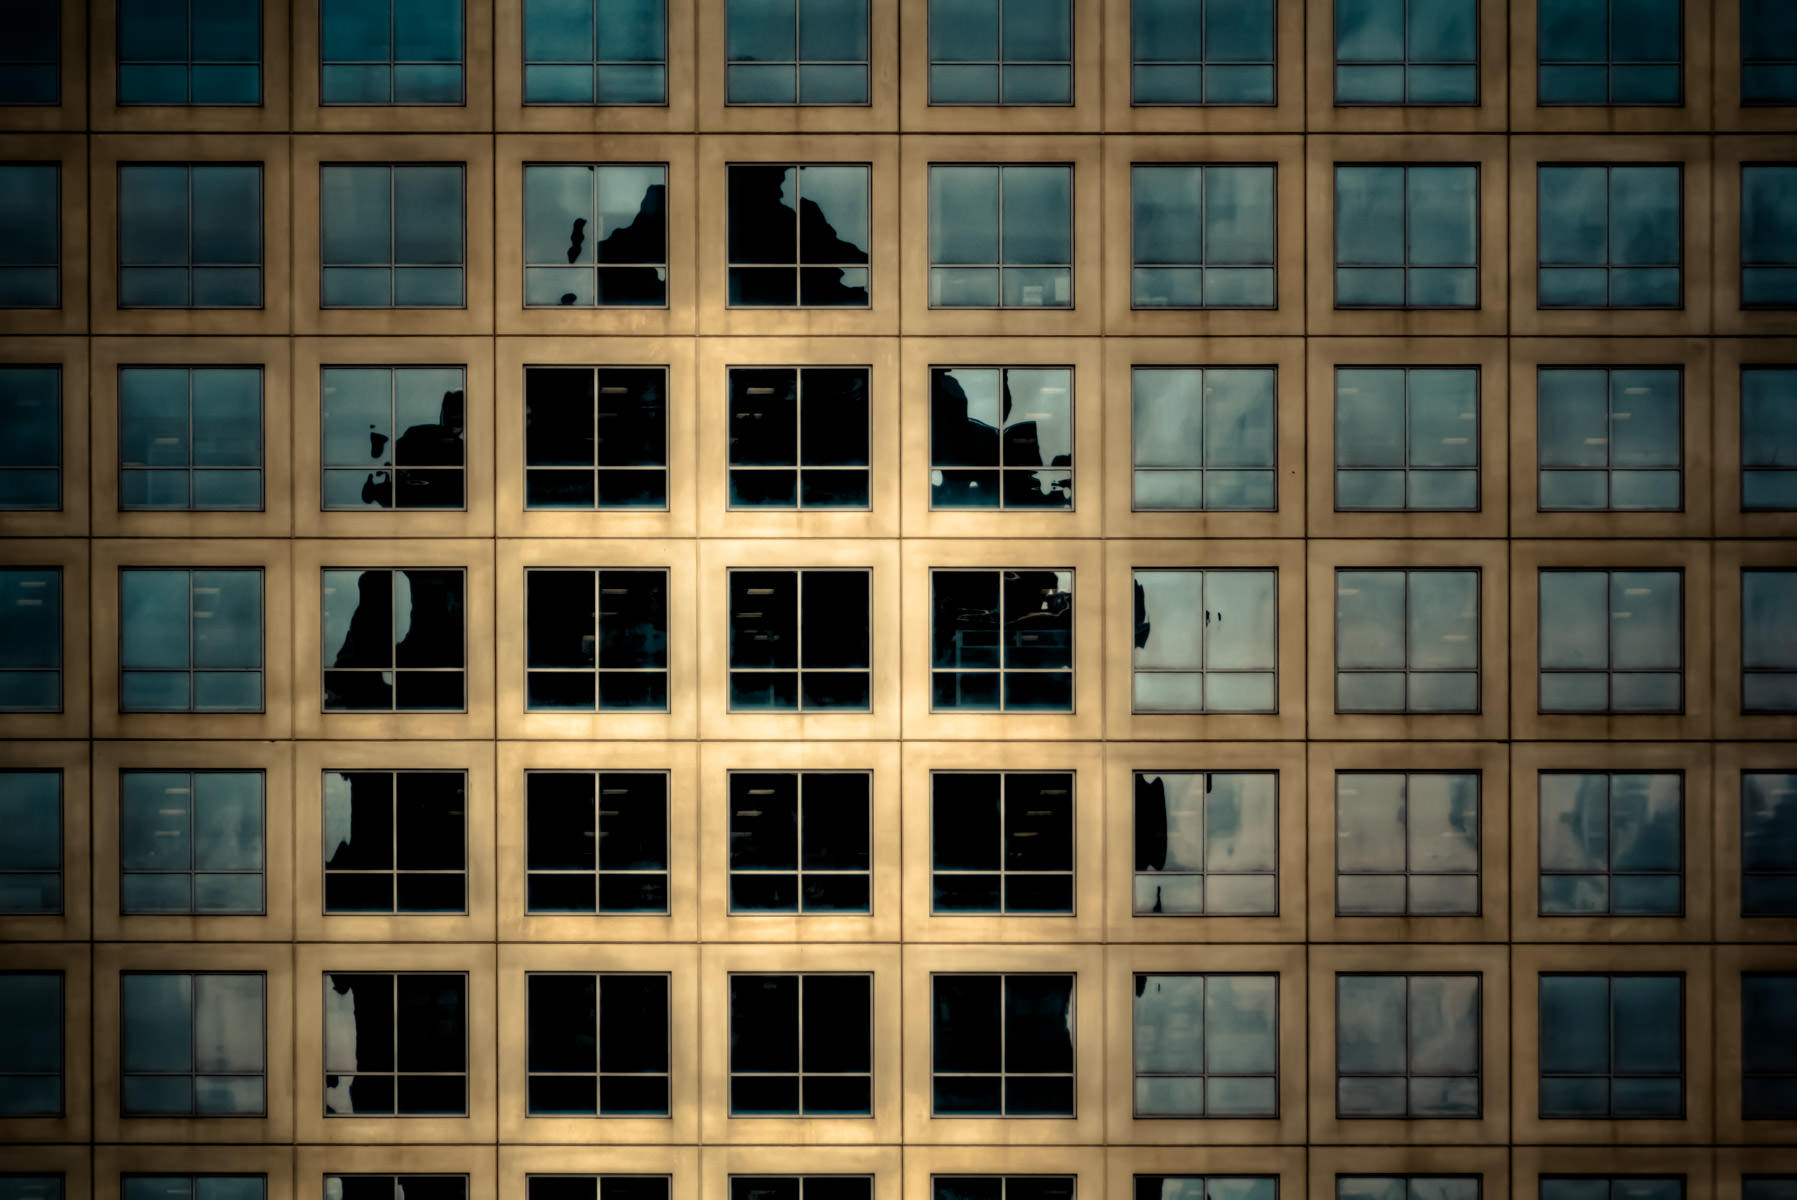 Dallas' Trammell Crow Center as reflected in the windows of a neighboring building.